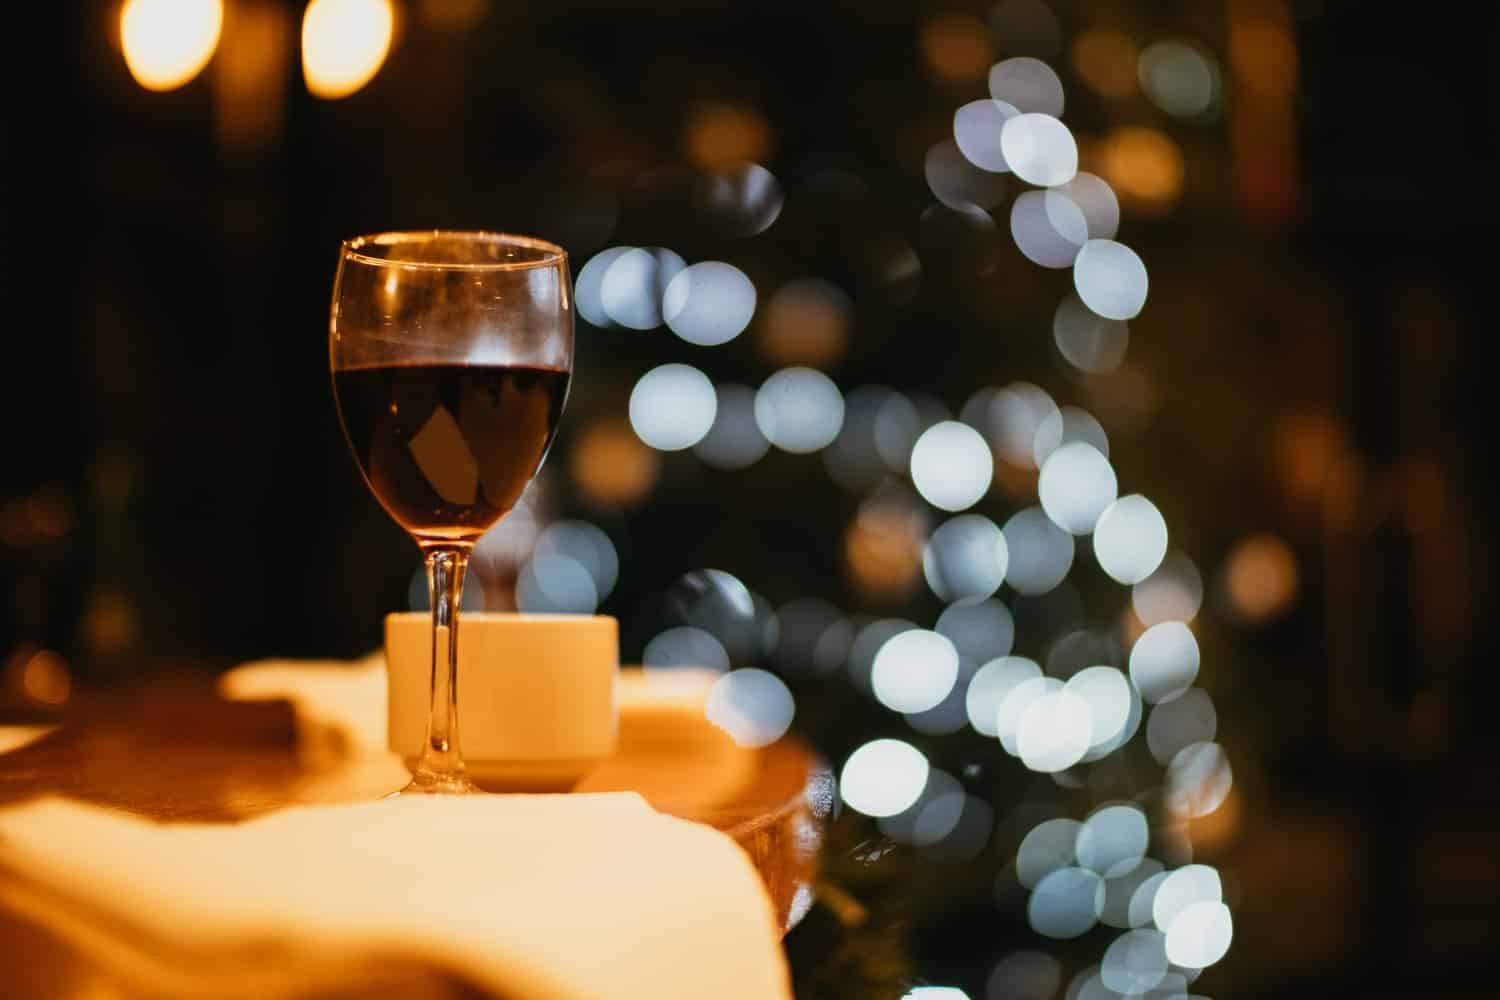 a glass of wine with a christmas tree in the background